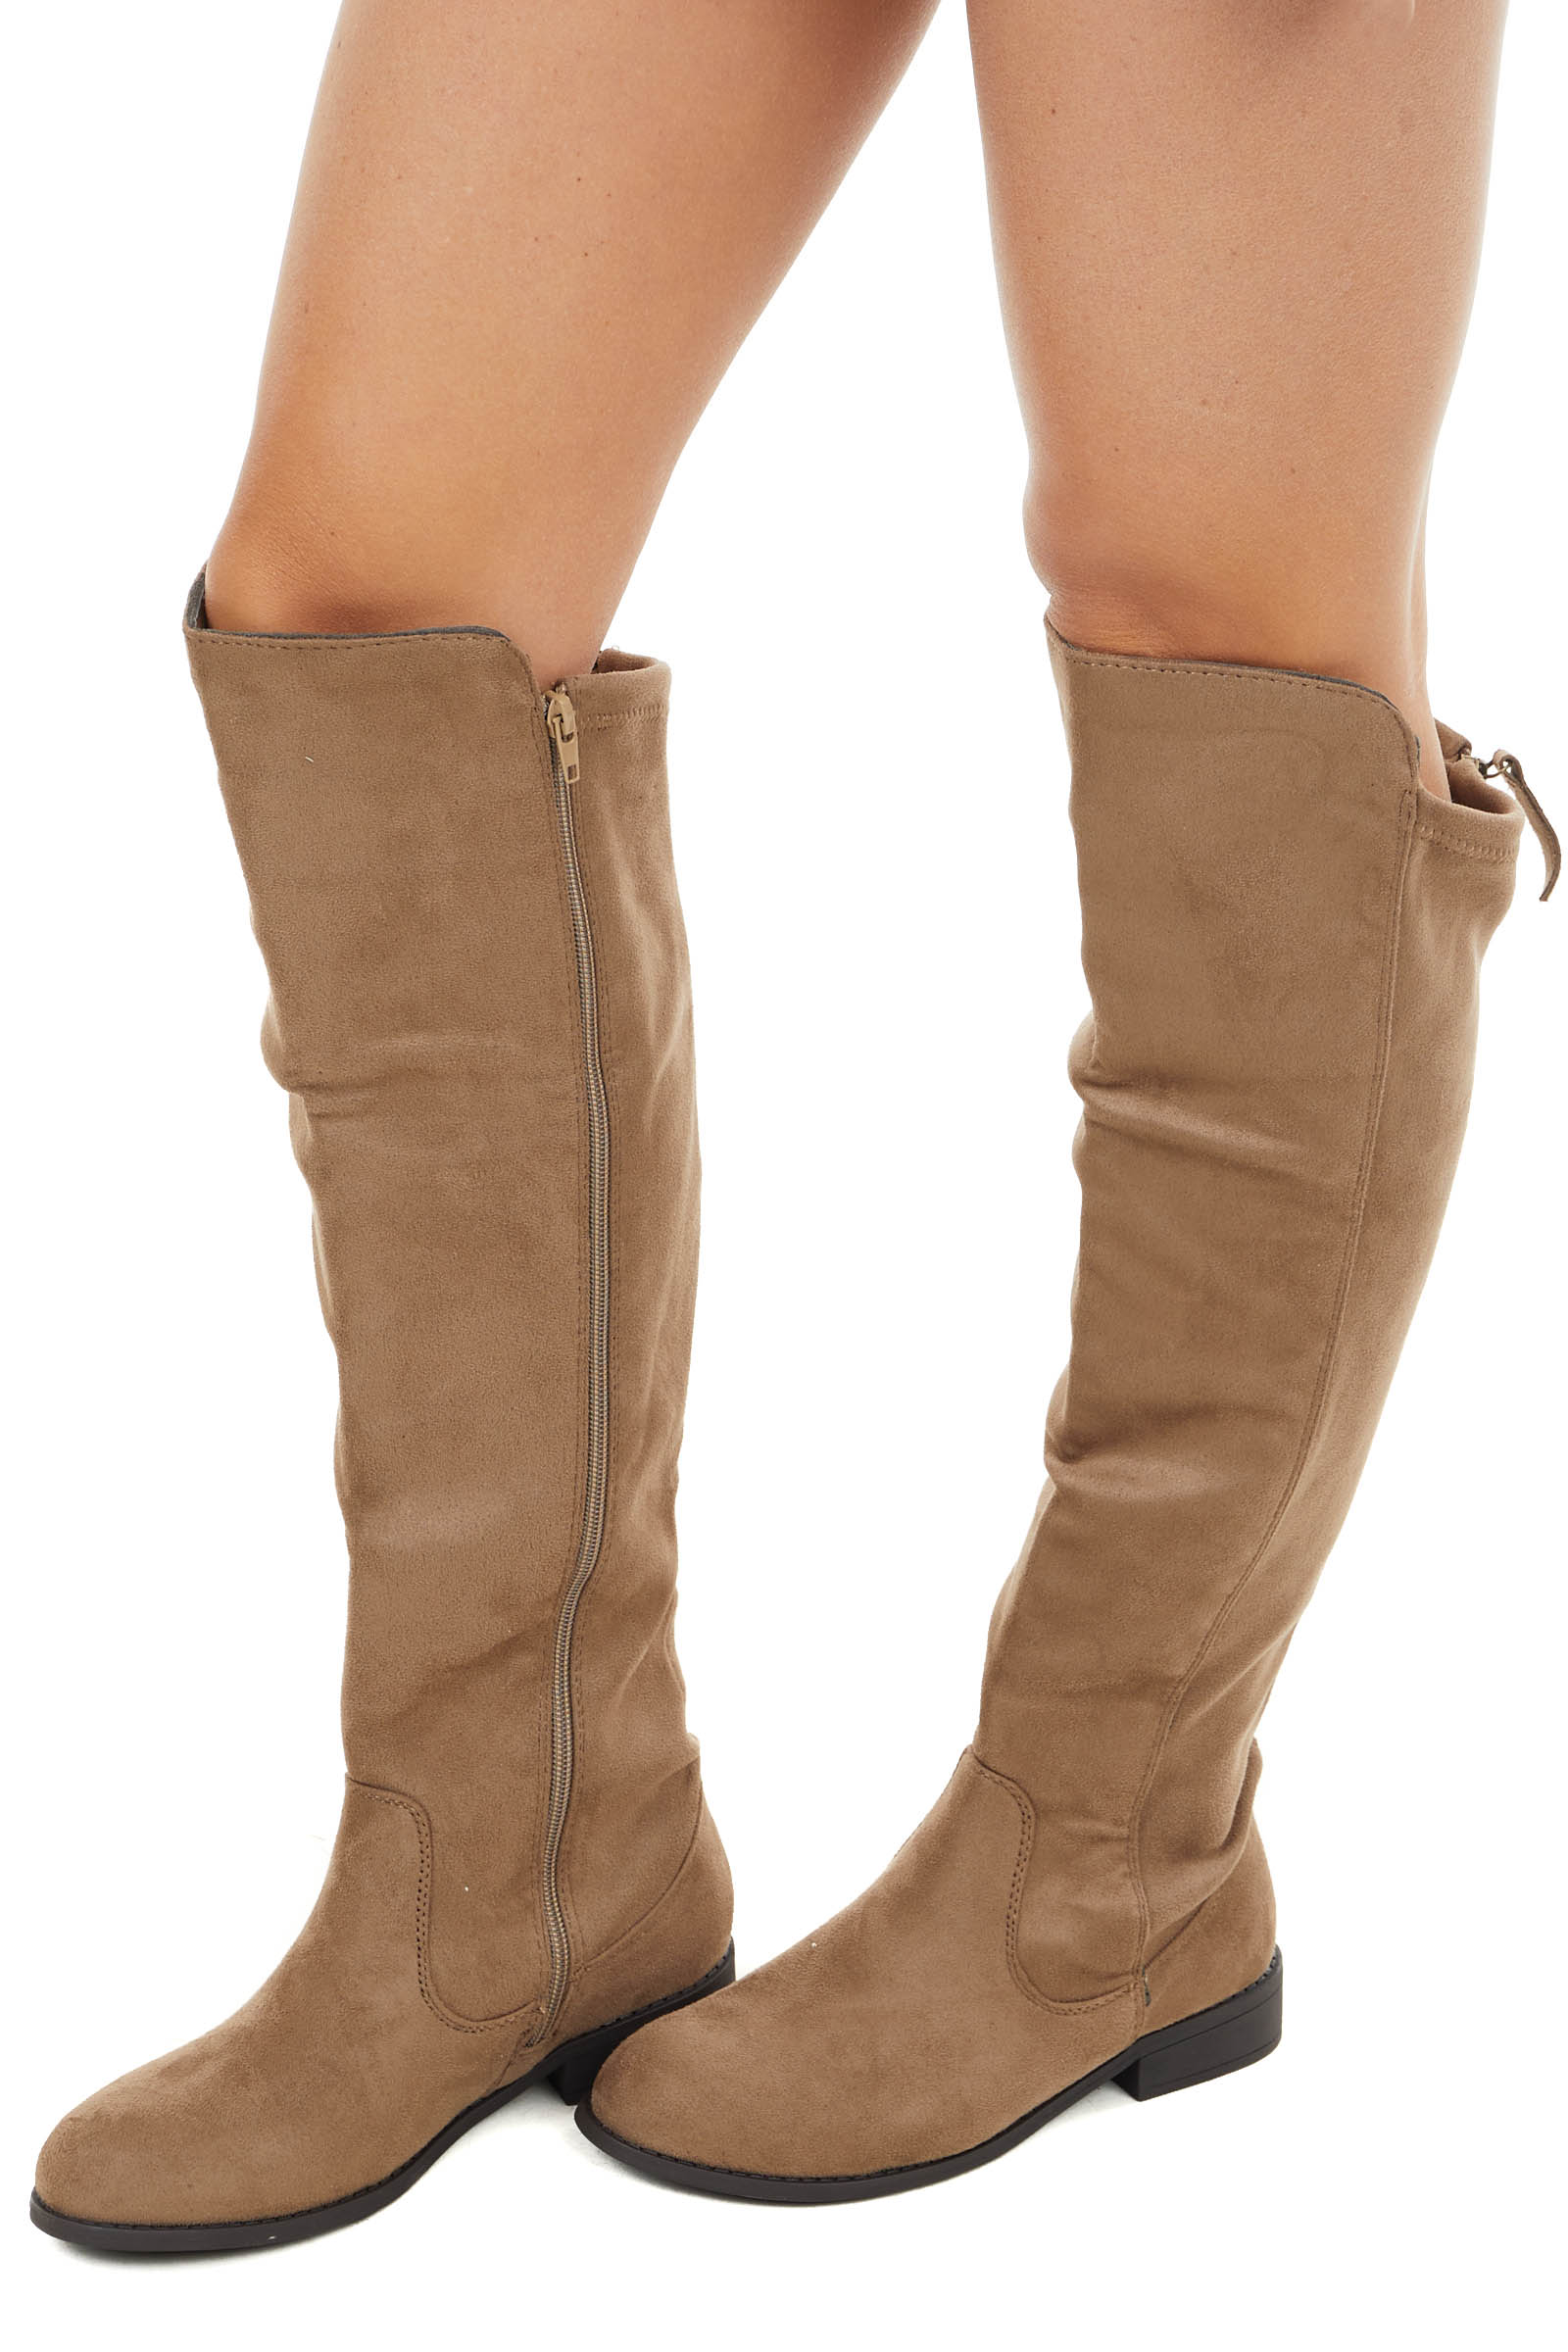 Taupe Faux Suede Knee High Zip Up Boots with Rounded Toe